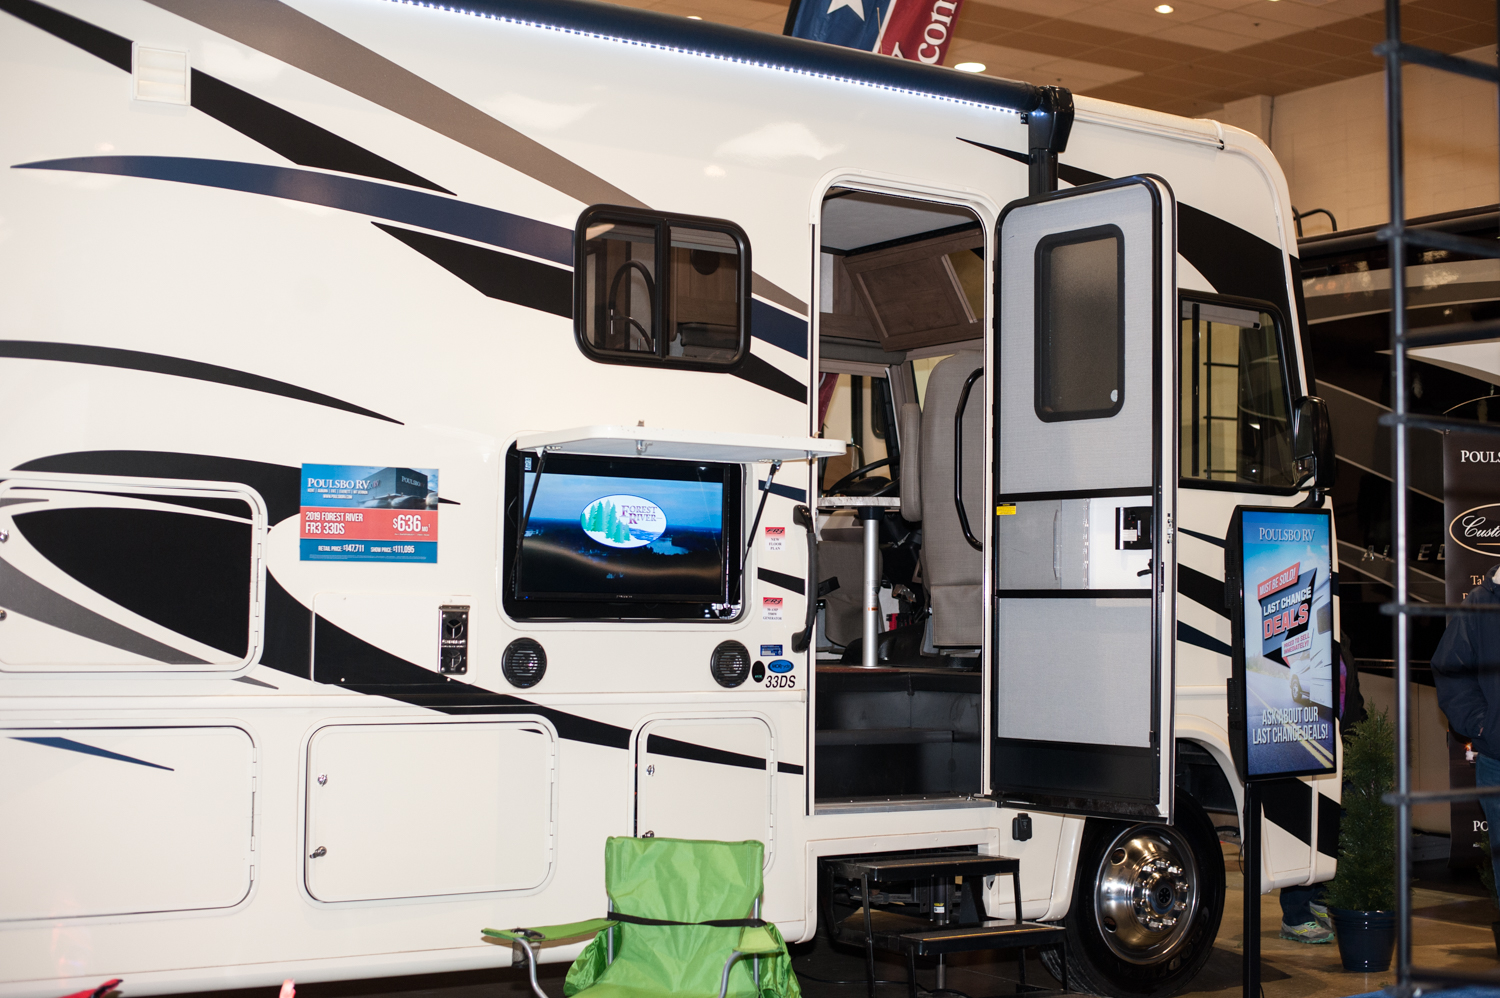 $147,711 - Poulsbo RV's 2019 Forest River FR3 33DS. The Tacoma RV Show is happening this weekend (Jan. 17-20) at the Tacoma Dome, with hundreds of RV's on display and more than 100 brands at the show. Since we are Seattle 'Refined' - you know we had to check out the most expensive, swankiest vehicles at the show! (Image: Elizabeth Crook / Seattle Refined)